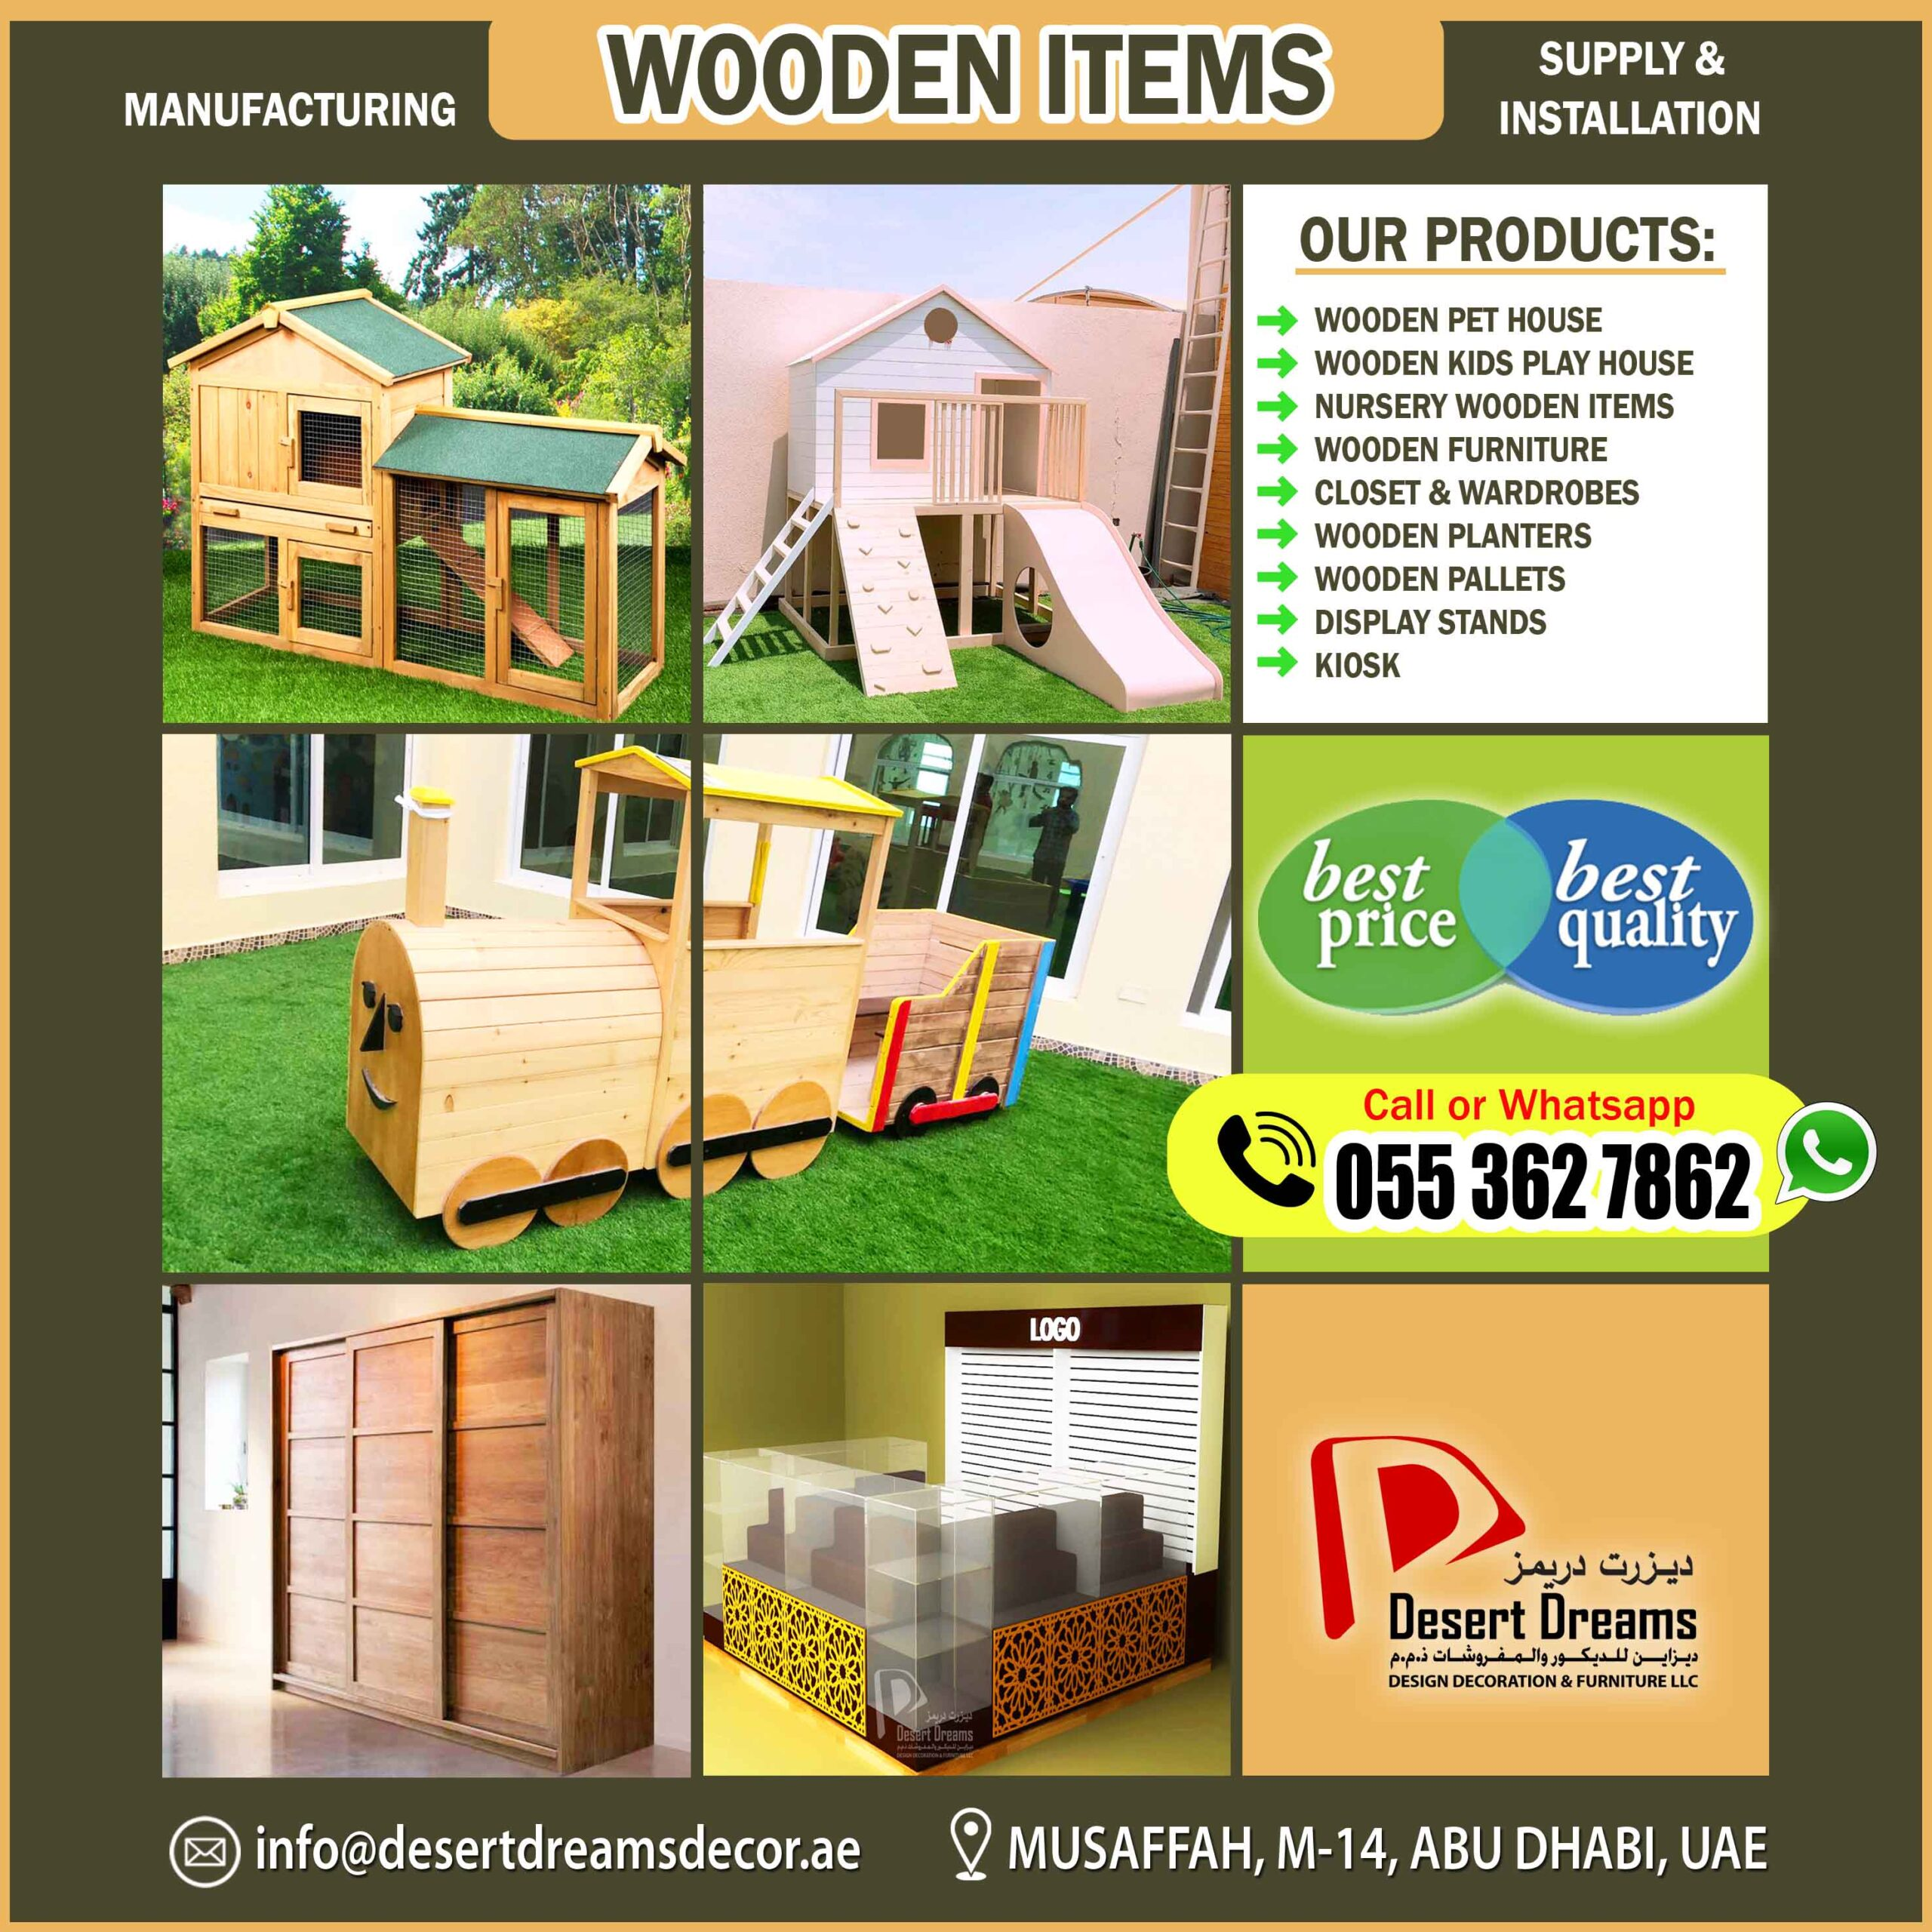 Supply and Install Wooden Items in UAE.jpg